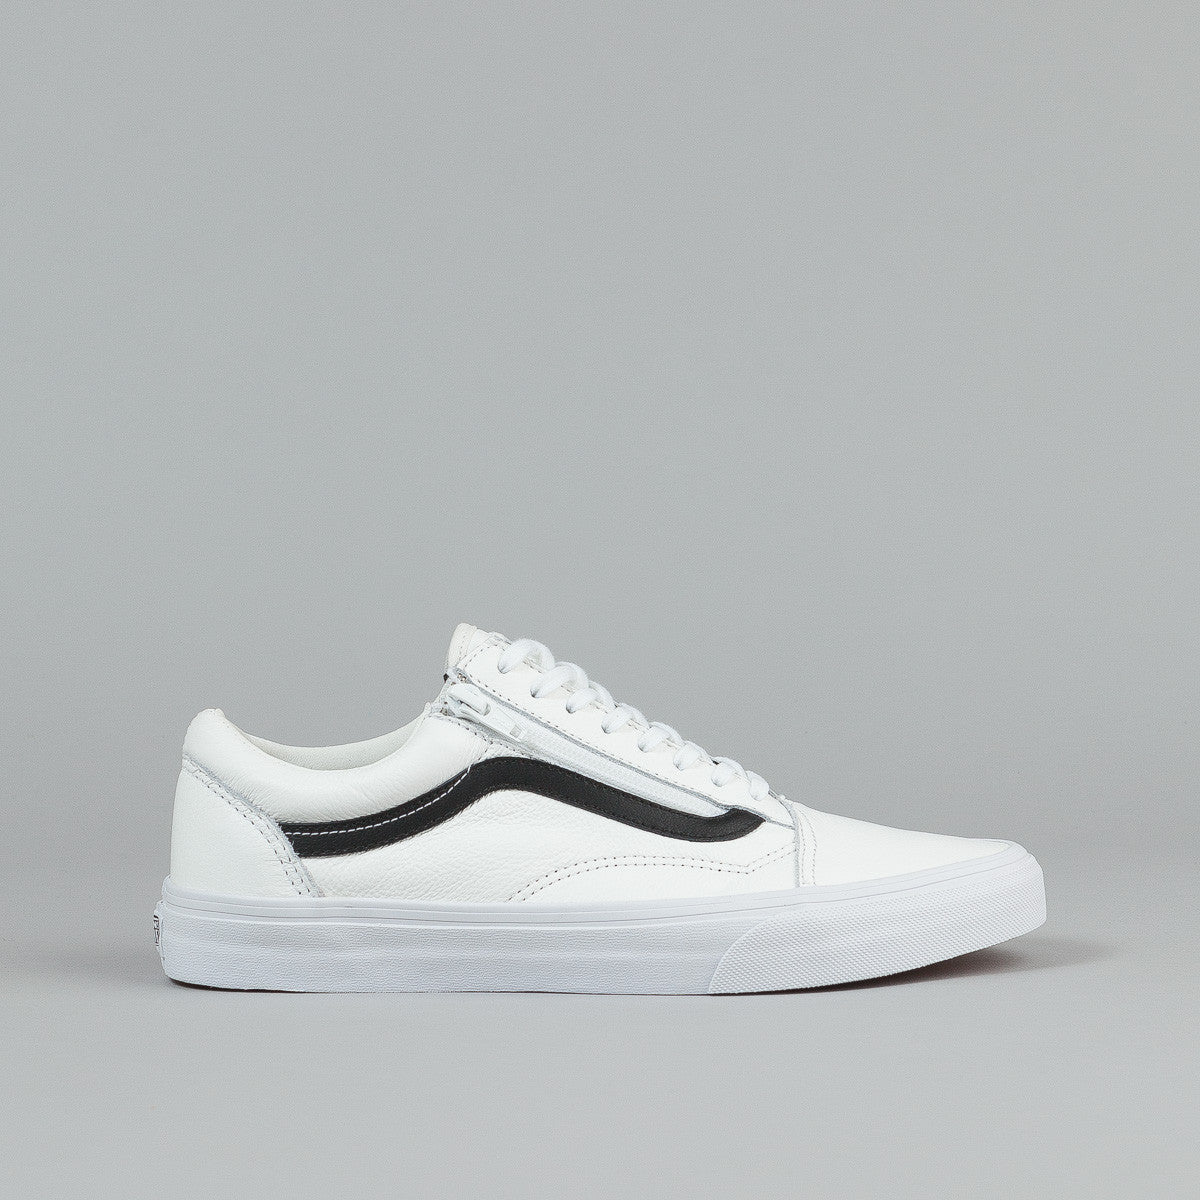 vans old skool white and black